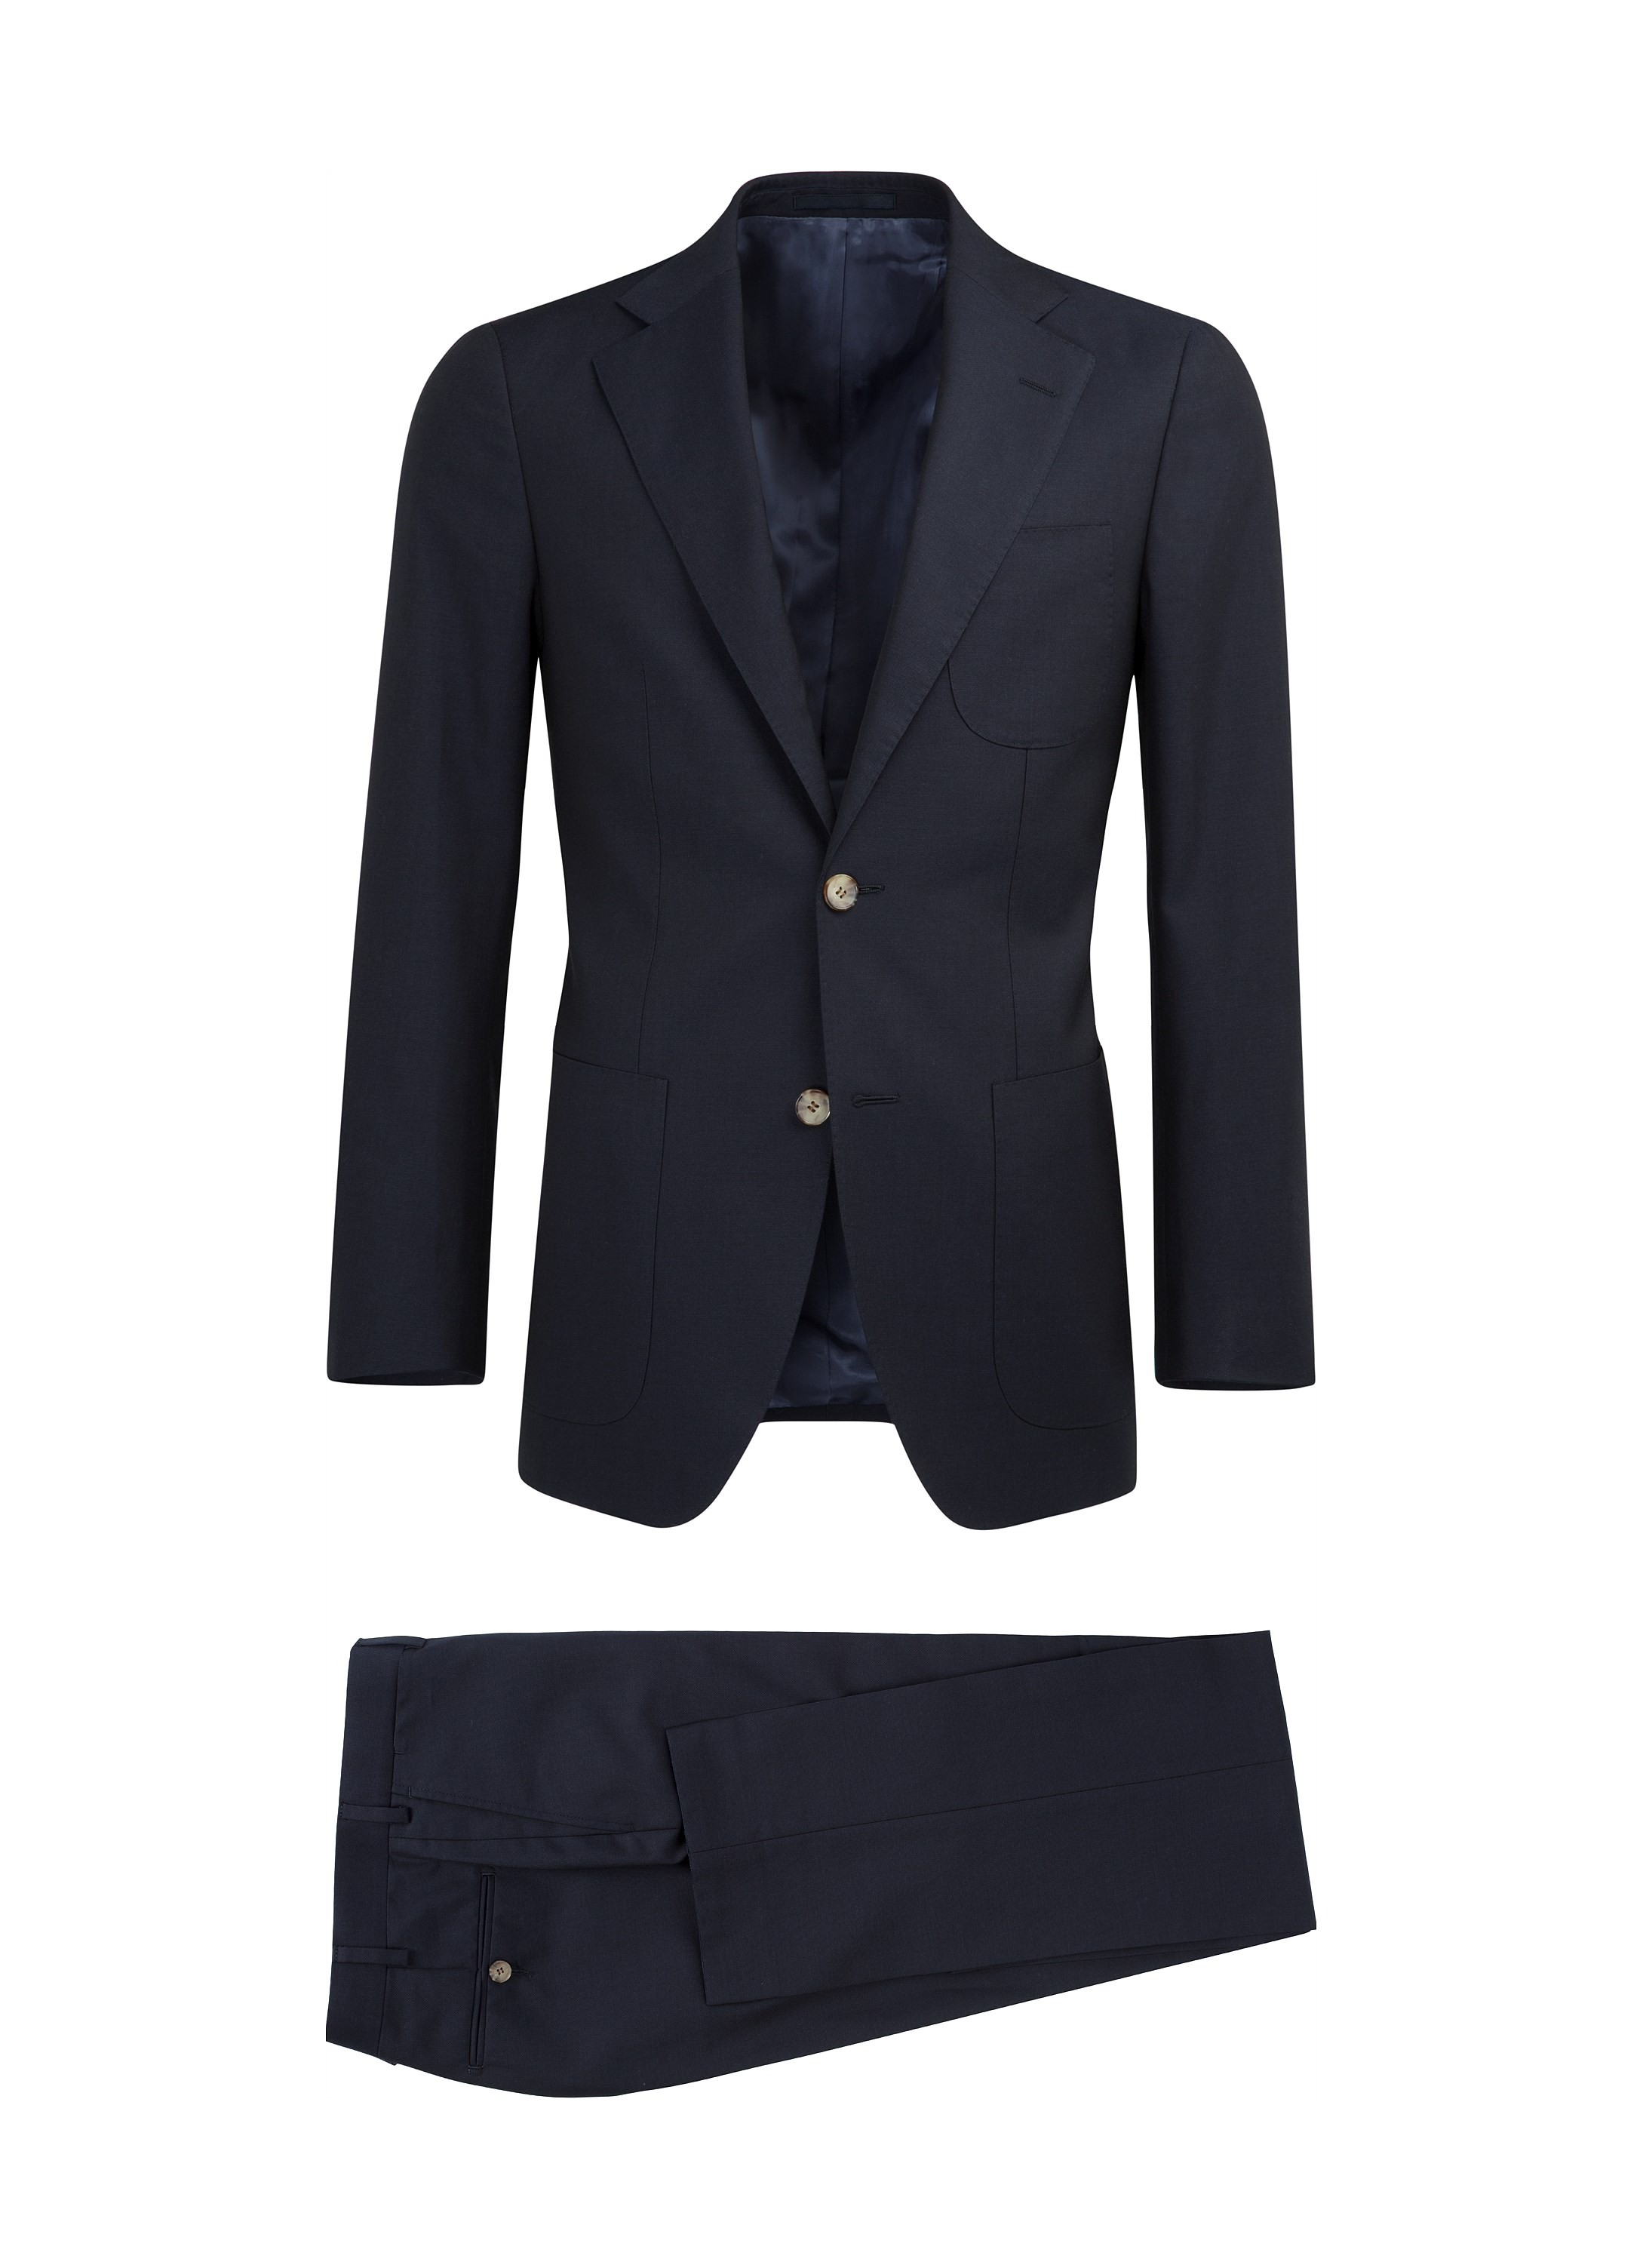 http://statics.suitsupply.com/images/products/Suits/zoom/Suits_Navy_Plain_Hudson_P4264_Suitsupply_Online_Store_5.jpg